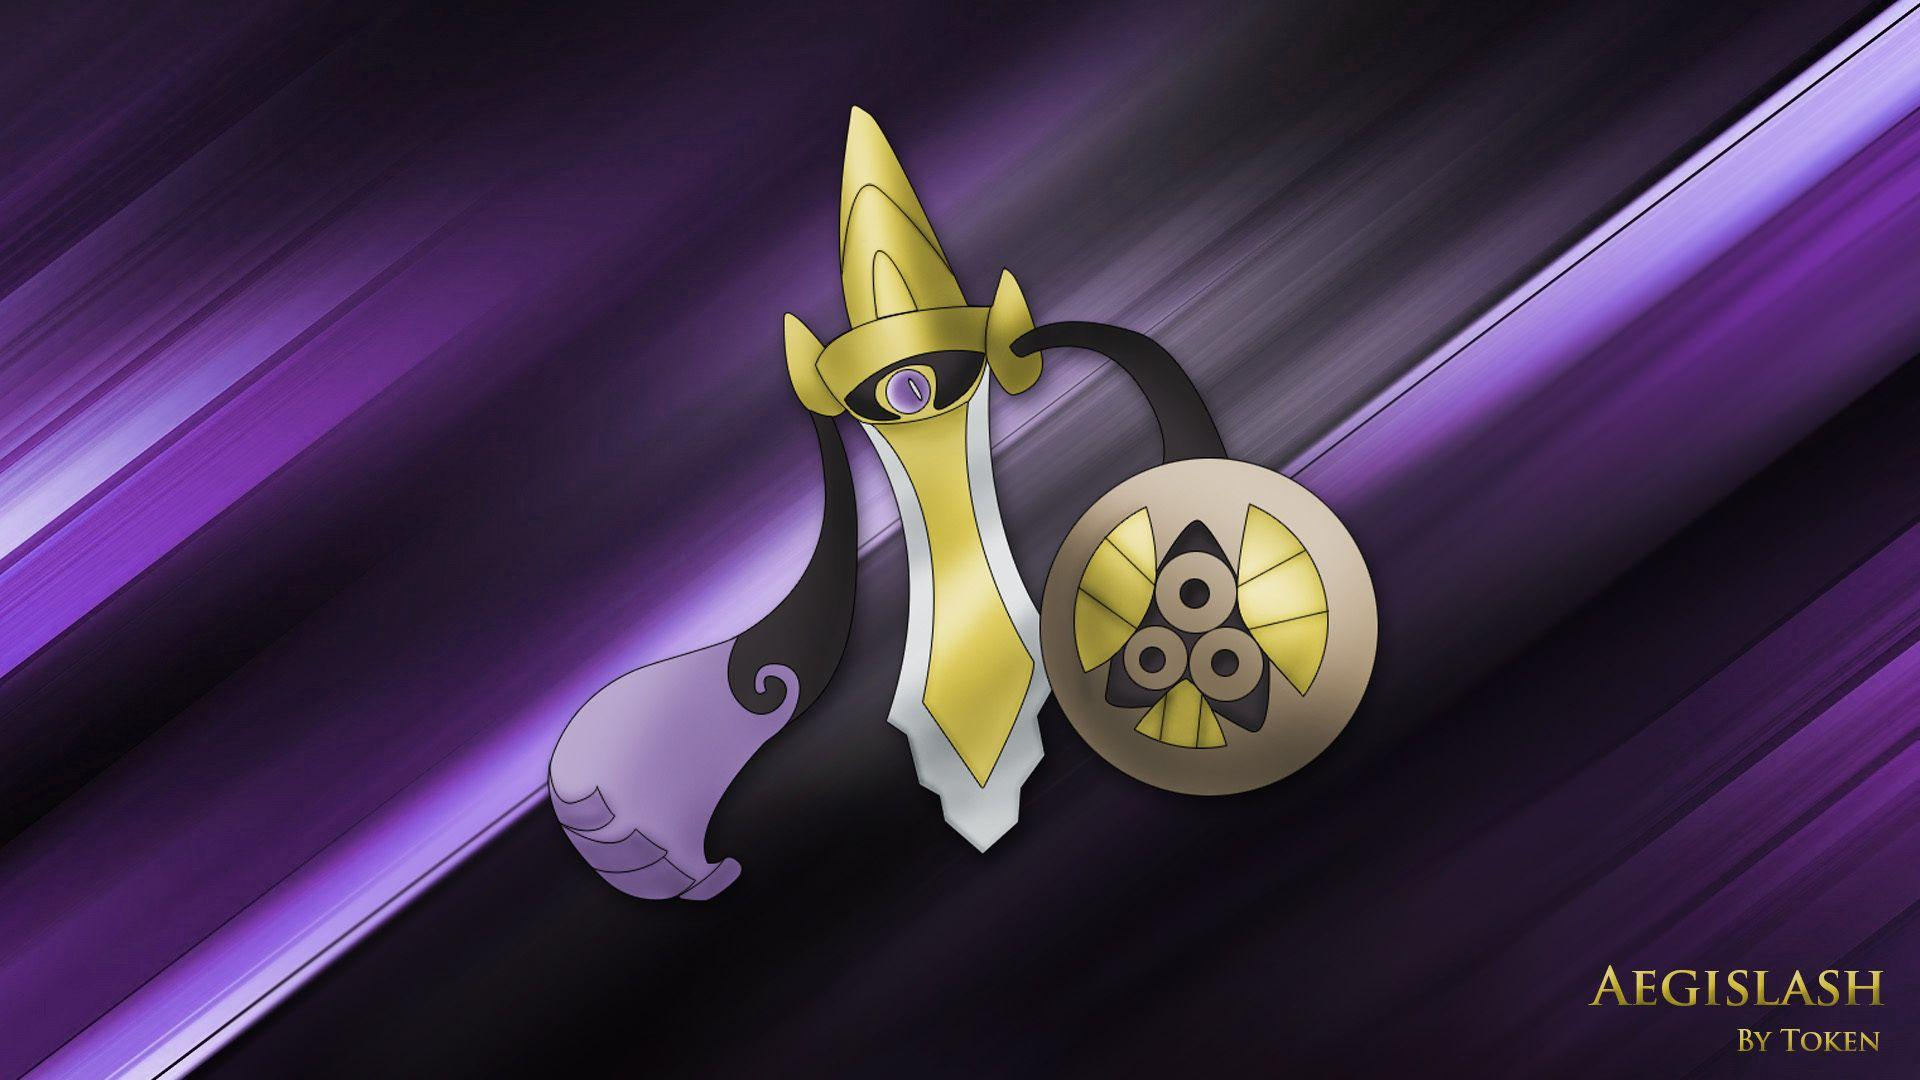 1920x1080 aegislash, pokemon desktop wallpapers 40877